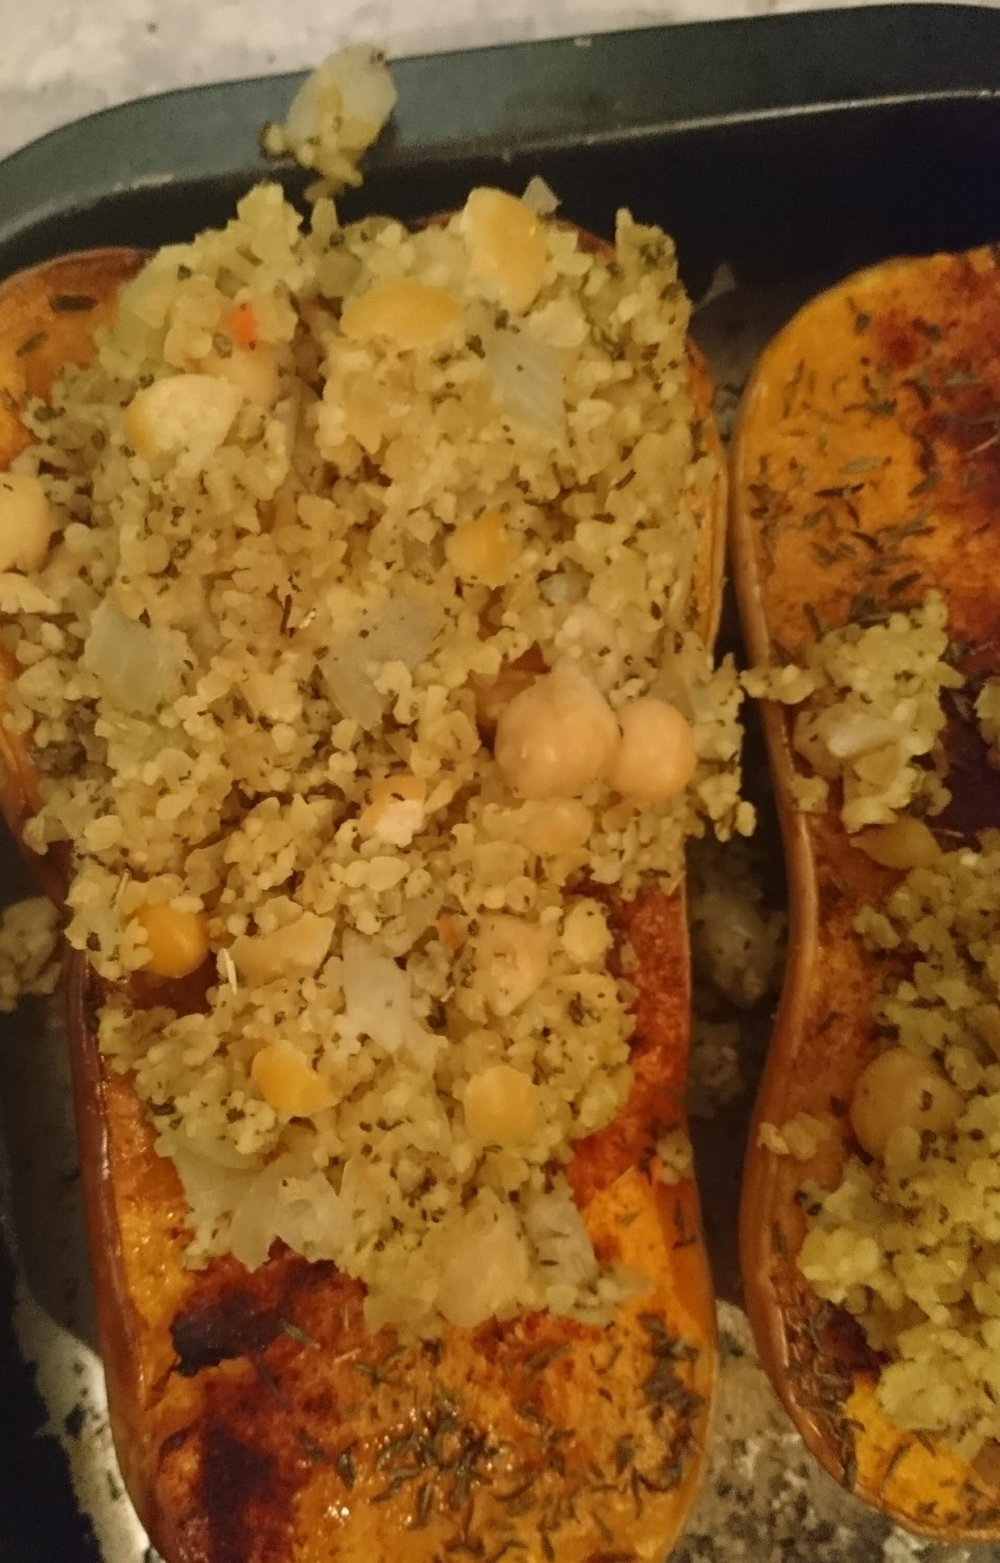 Prep time: 10 minutes  Cook time: 55 minutes  Yield: 2 - 4 servings  Ingredients:  1 Butternut squash  1 tsp Paprika  1 tsp Thyme  1 tbsp Fry Light Olive oil  100g Bulgur wheat cous cous mix  100g Cooked chickpeas  1 White onion  1 tbsp Garlic powder  1 tsp Bouillon or stock powder  1 tbsp Dried sage  Sea salt and pepper     Method:  1. Preheat the oven to 260C  2. Cut the squash in half lengthways and scoop out the seeds  3. Spray the Fry Light and rub the paprika, thyme, sea salt and pepper on the flesh of the squash  4. Place in the oven for 15 - 20  5. Meanwhile spray a saucepan with Fry Light, add to the heat and sautee the onions  6. Add the bulghur wheat and cous cous and sage  7. Mix the bouillon with 50ml boiled water and add to the saucepan  8.  Stir until the bulghur wheat and cous cous has absorbed all the liquid  9. Add in the chickpeas and cook for 2 minutes then squash the chickpeas  10. Remove the squash from the oven and stuff with the mix  11. Put the squash back in the oven for 15 minutes - if you have any extra stuffing place this into an ovenproof dish and cook this along with the squash  Serve and enjoy